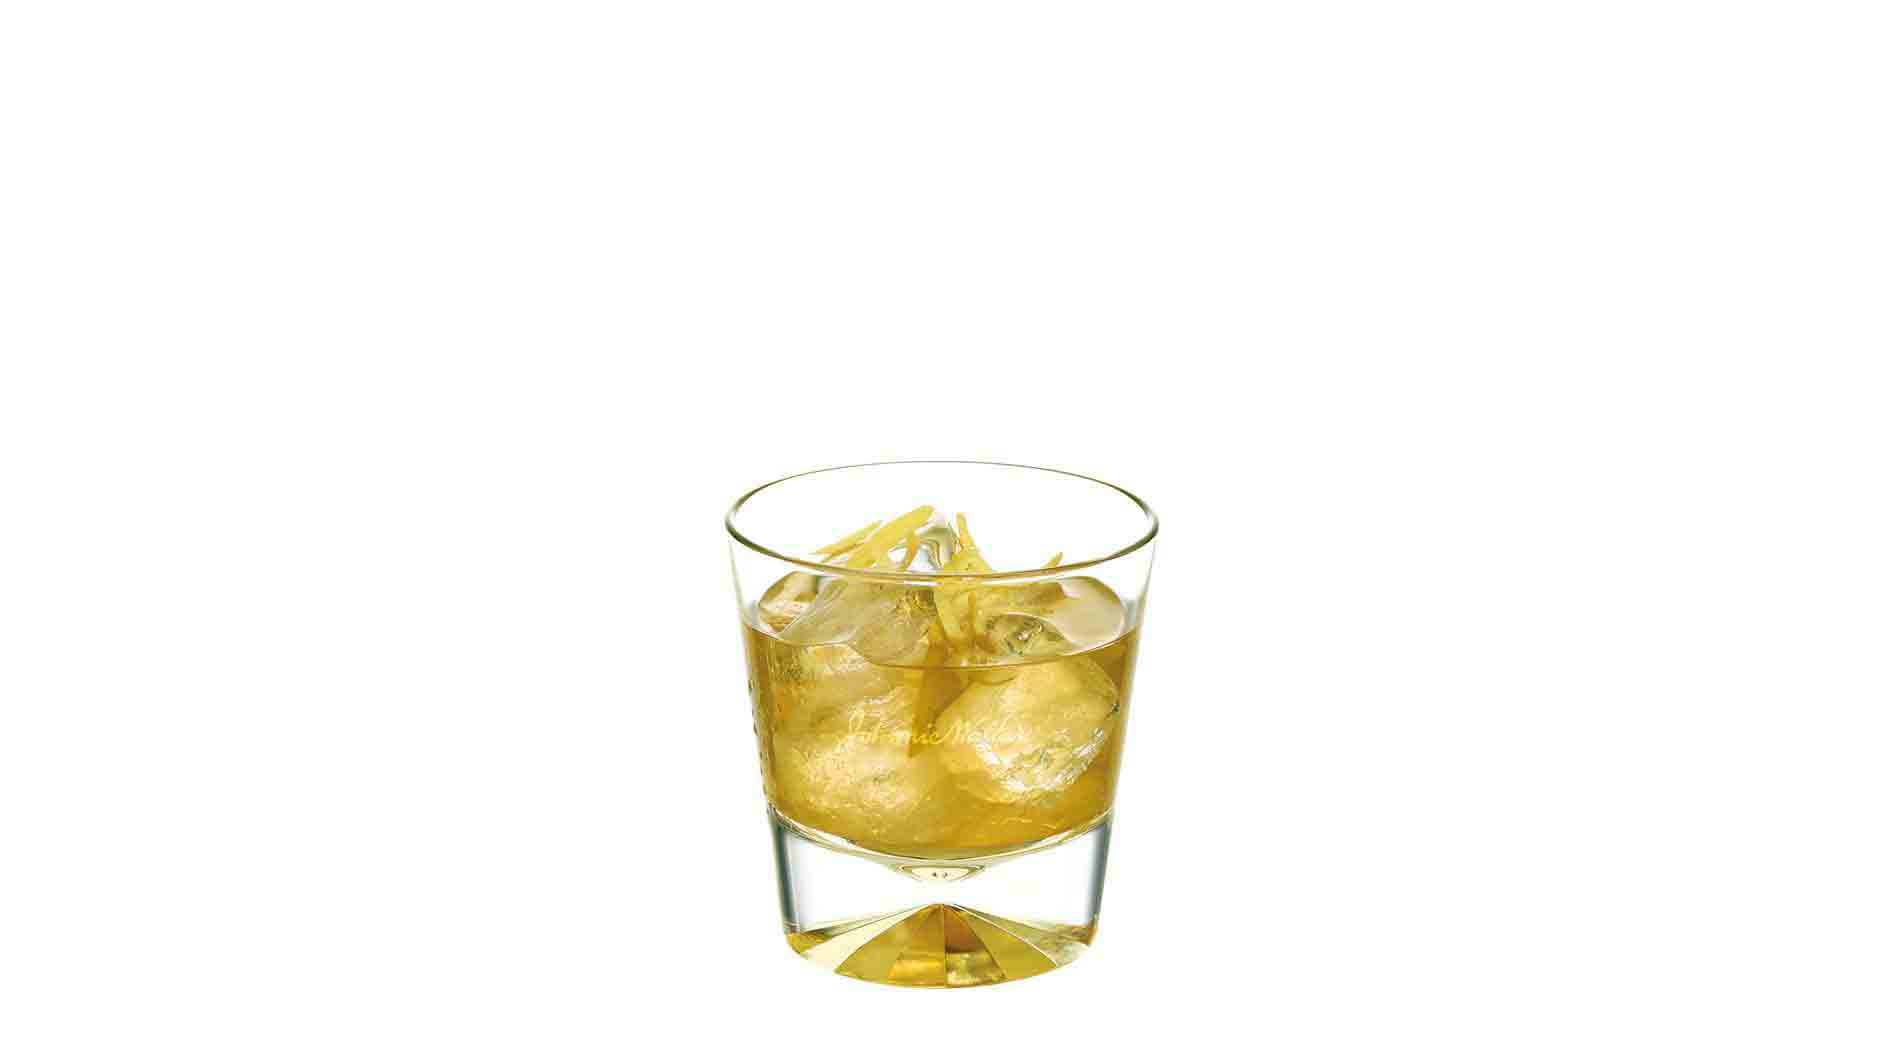 Johnnie Walker Platinum Label Jade Dew cocktail in a tumbler